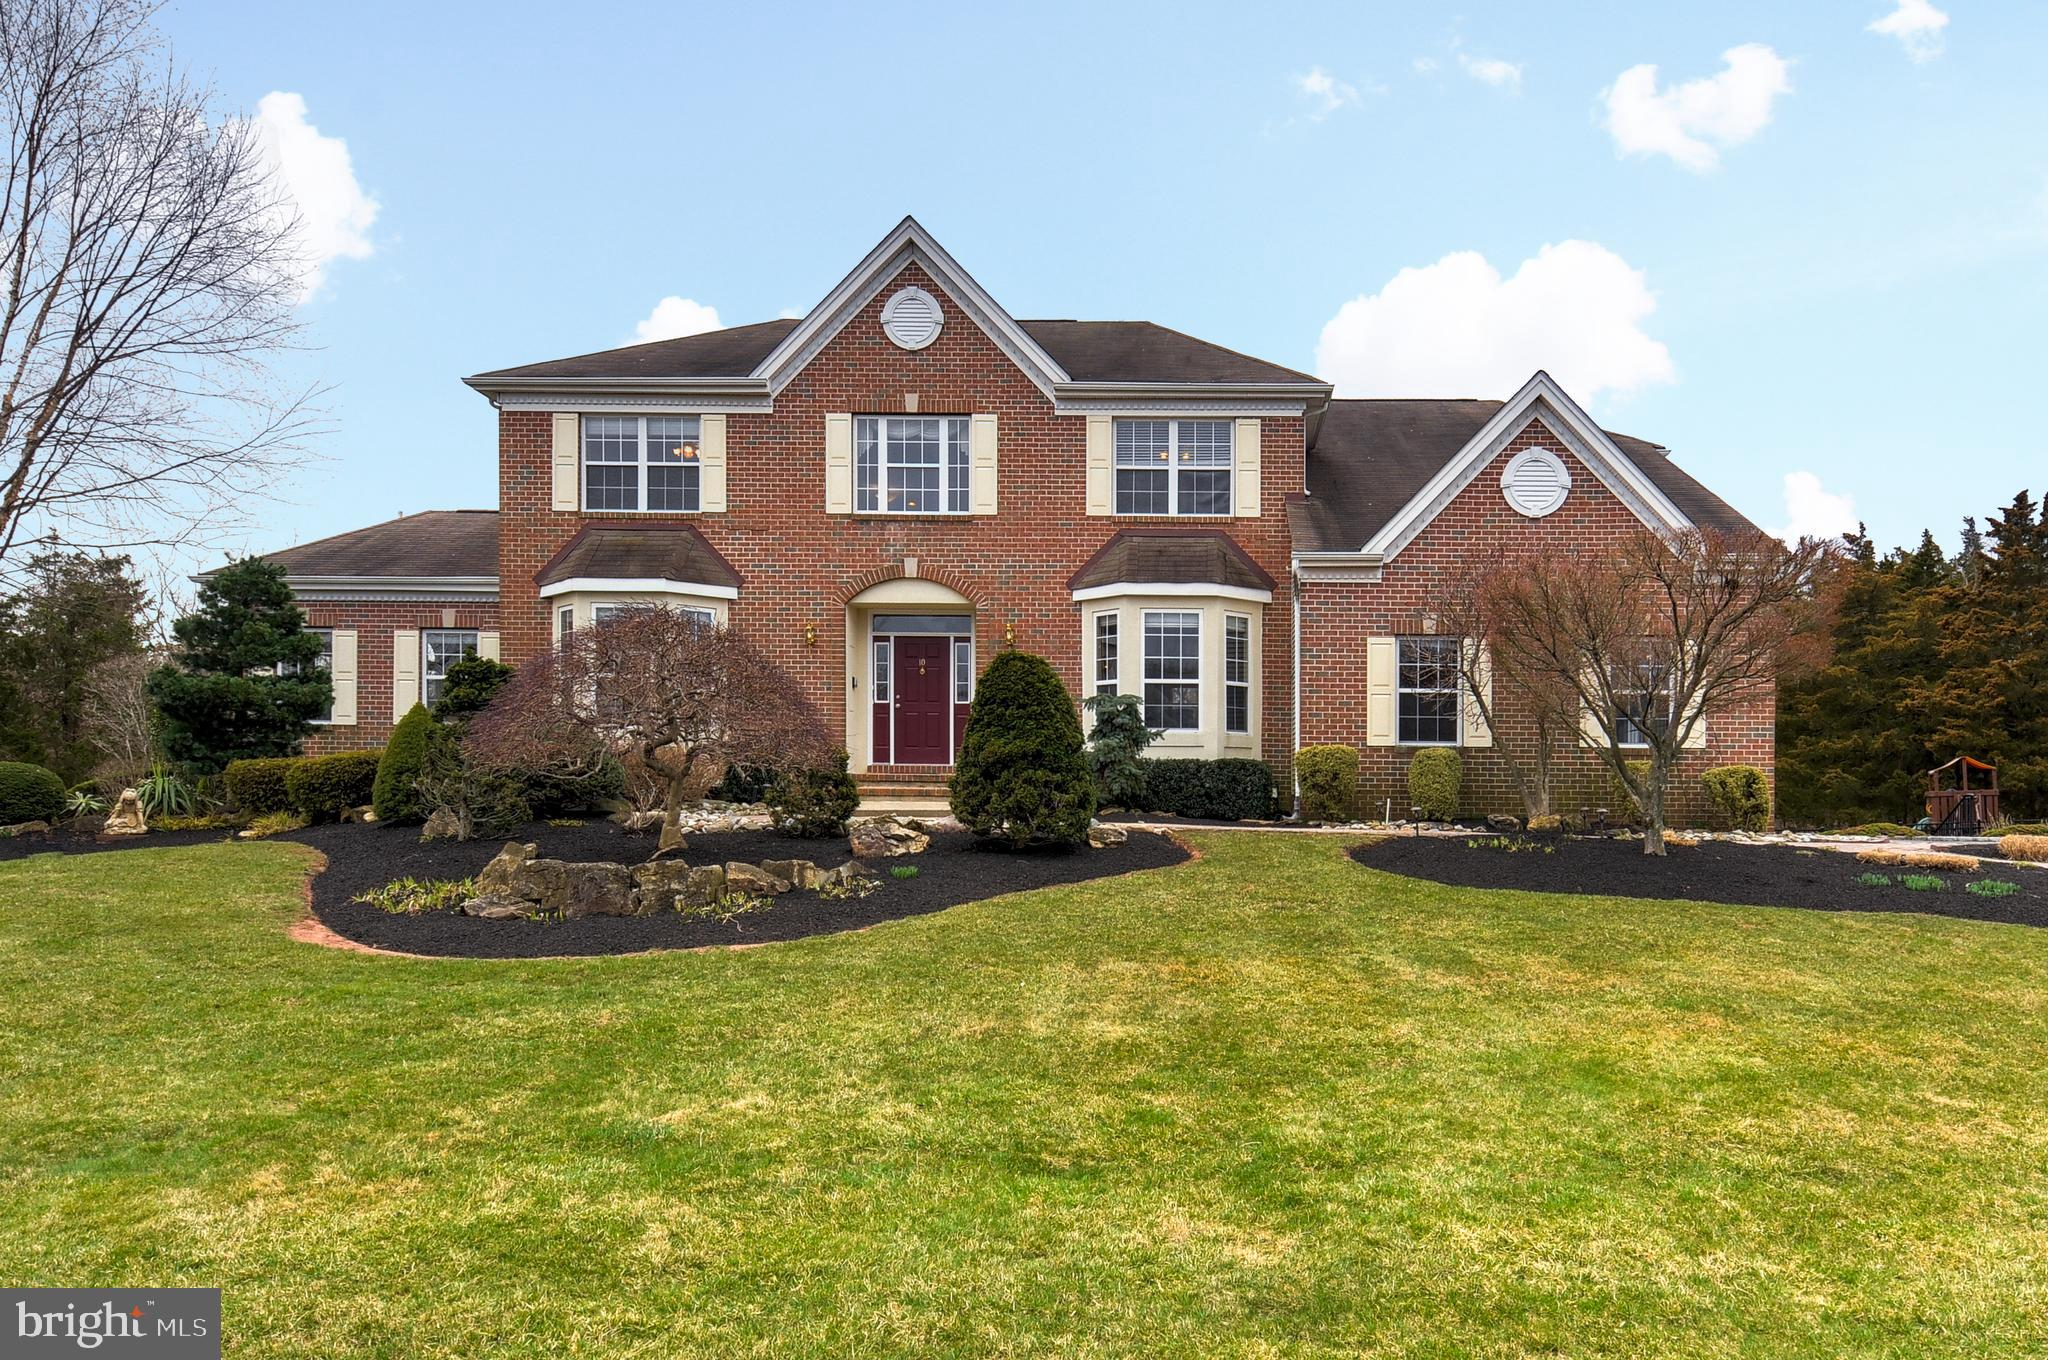 10 UNAMI CT, SOMERSET, NJ 08873